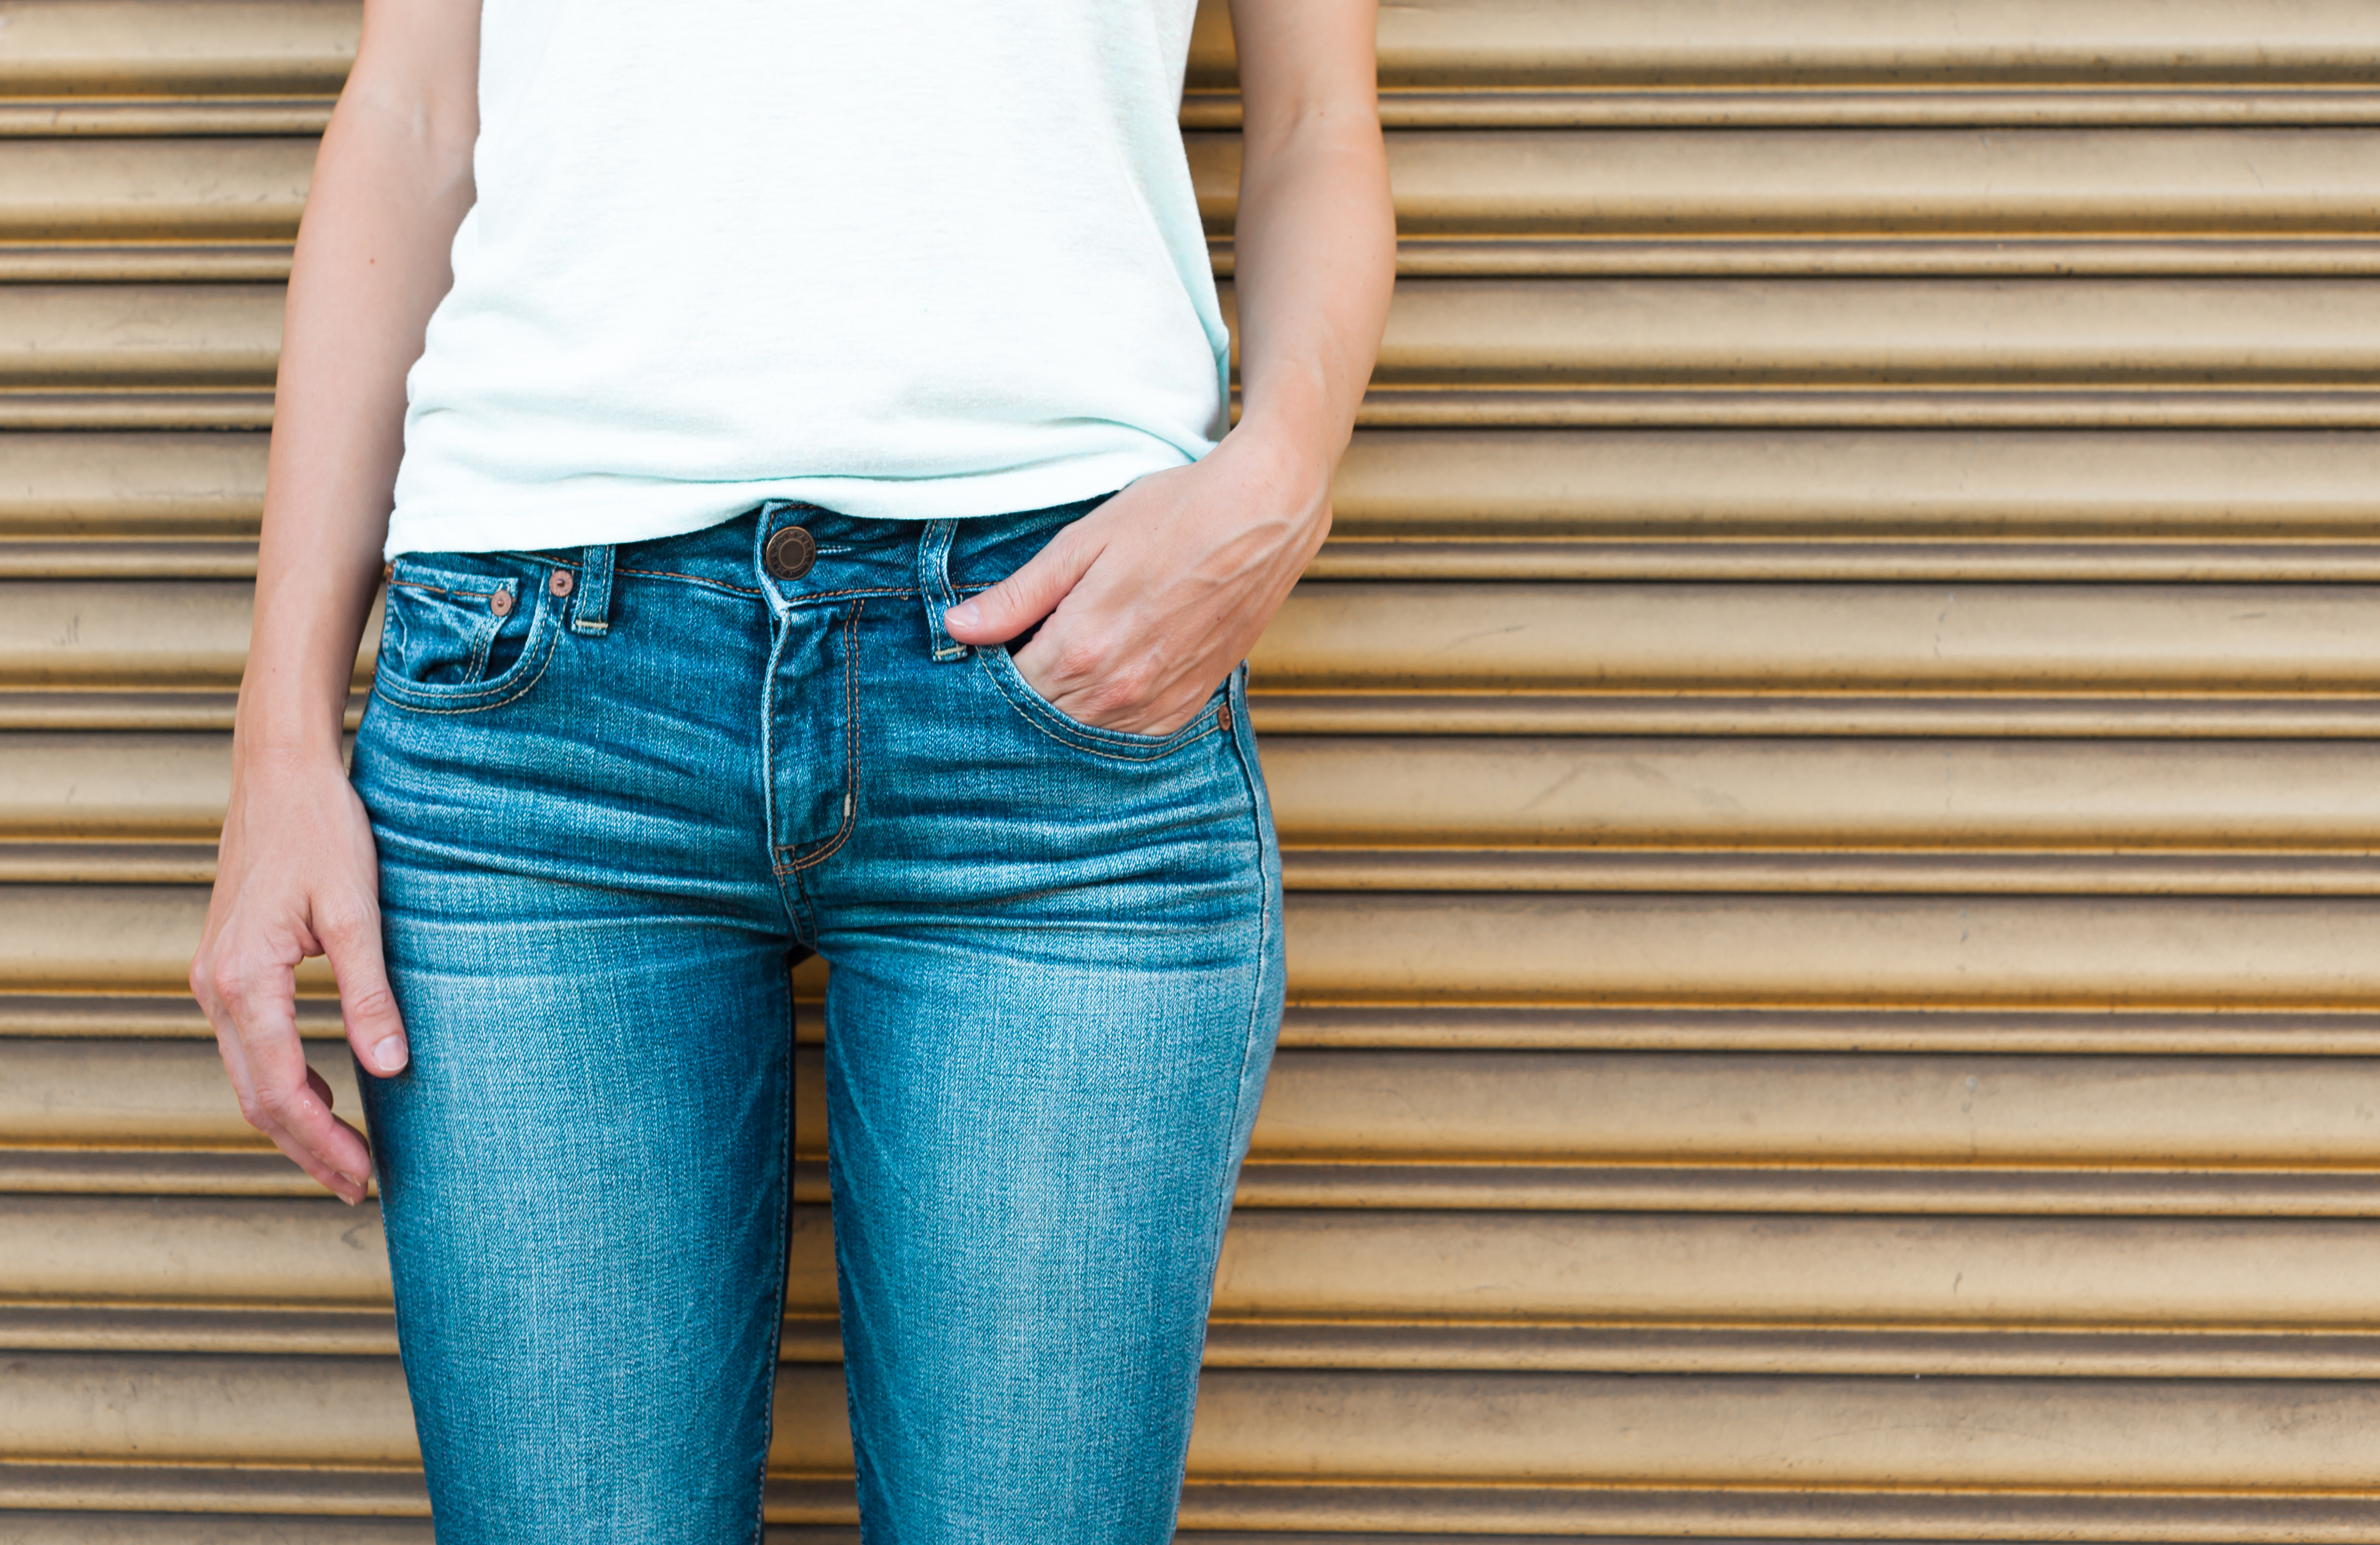 How to Write a Letter About Wearing Jeans to Work | Career Trend